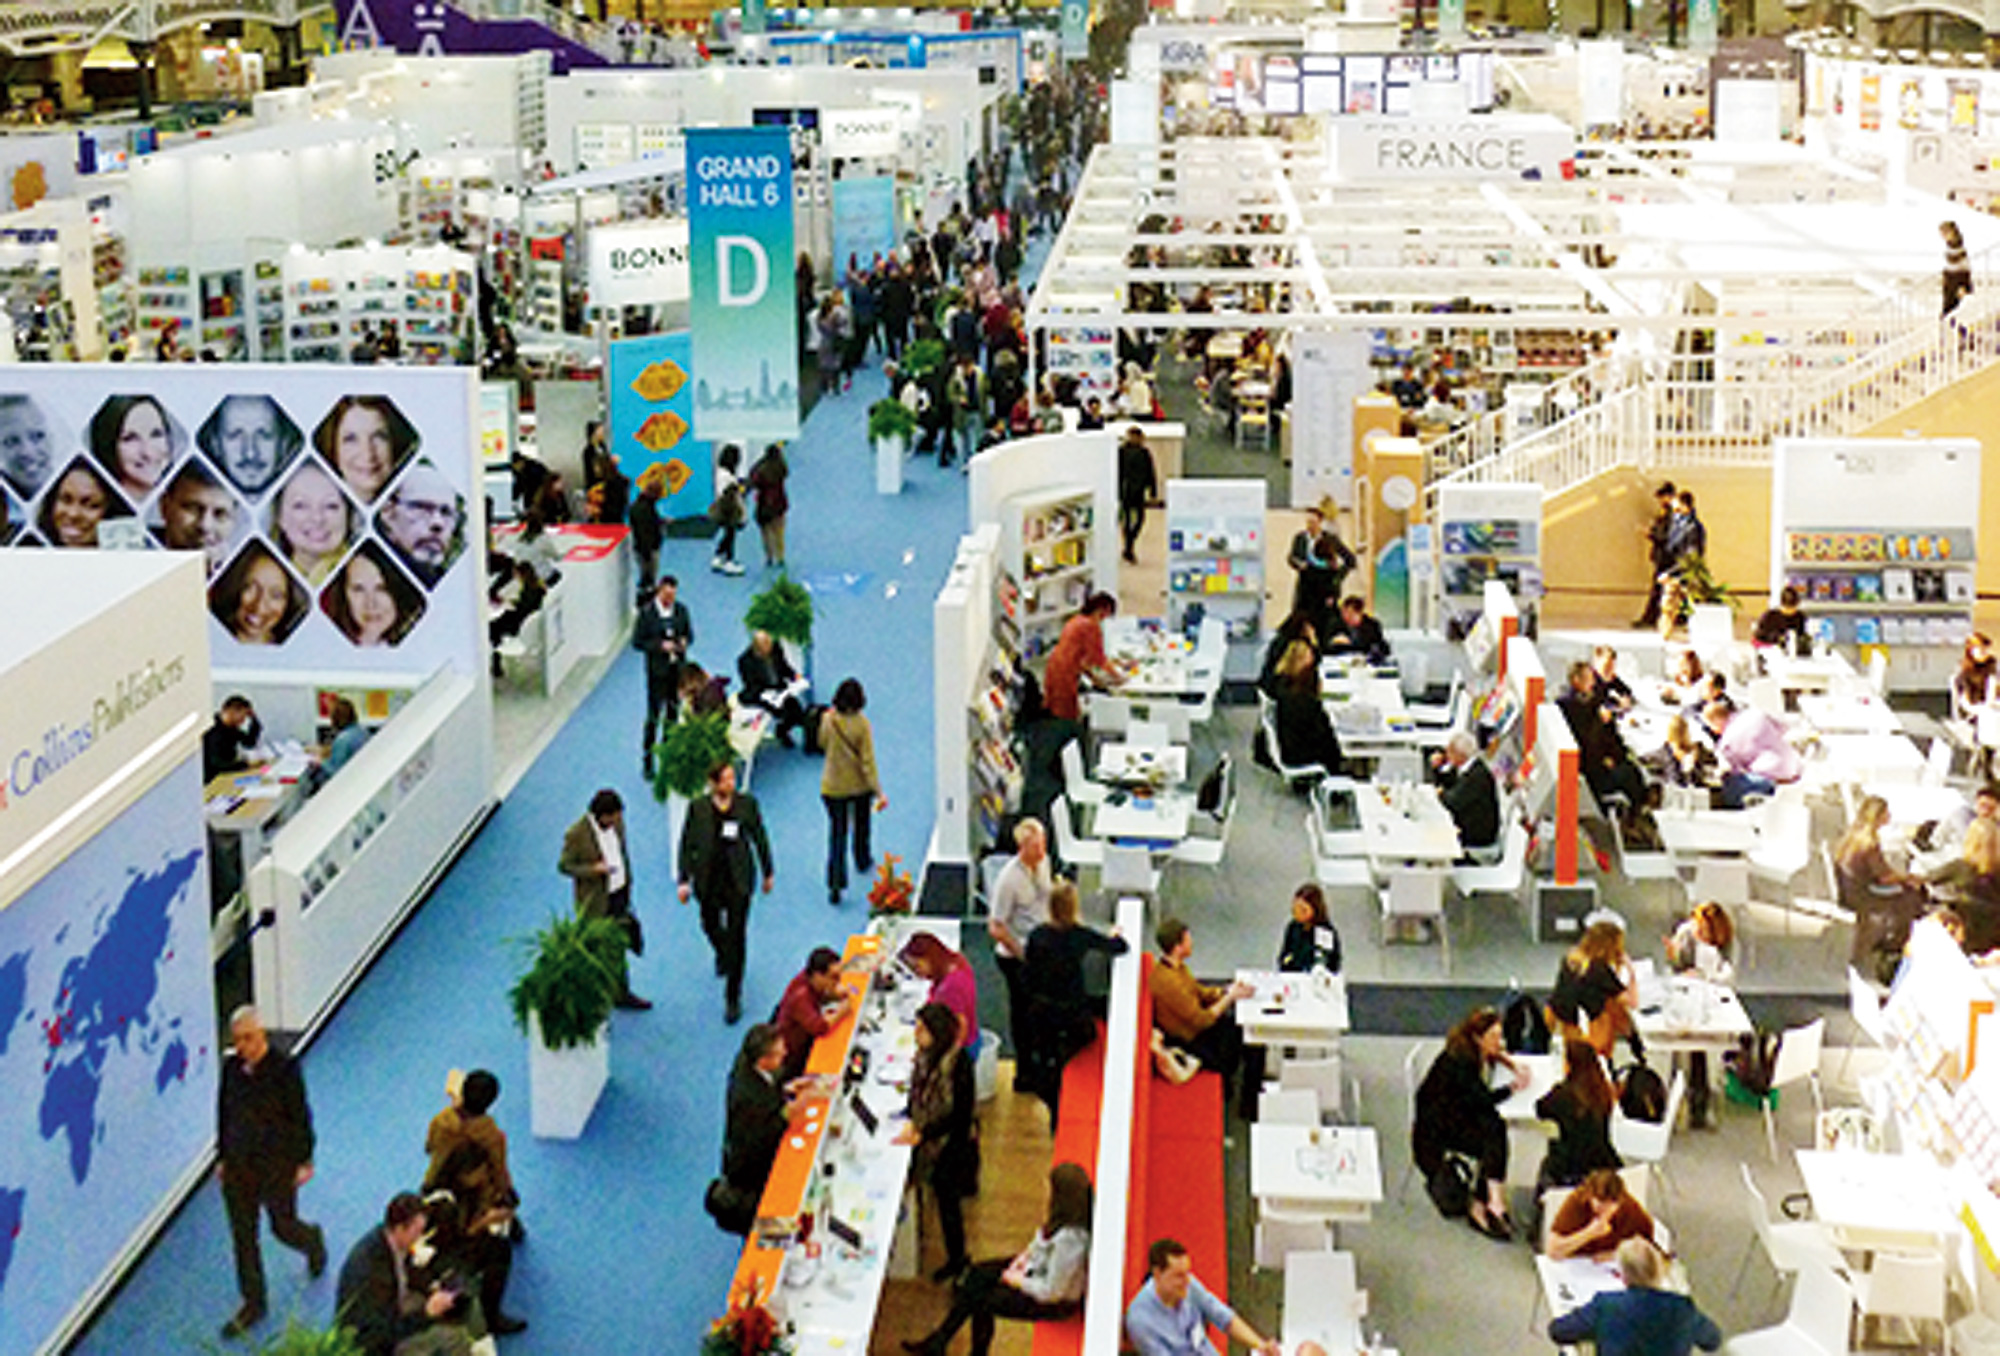 Many big publishers at the London Book Fair emphasize that they now have branches in India.